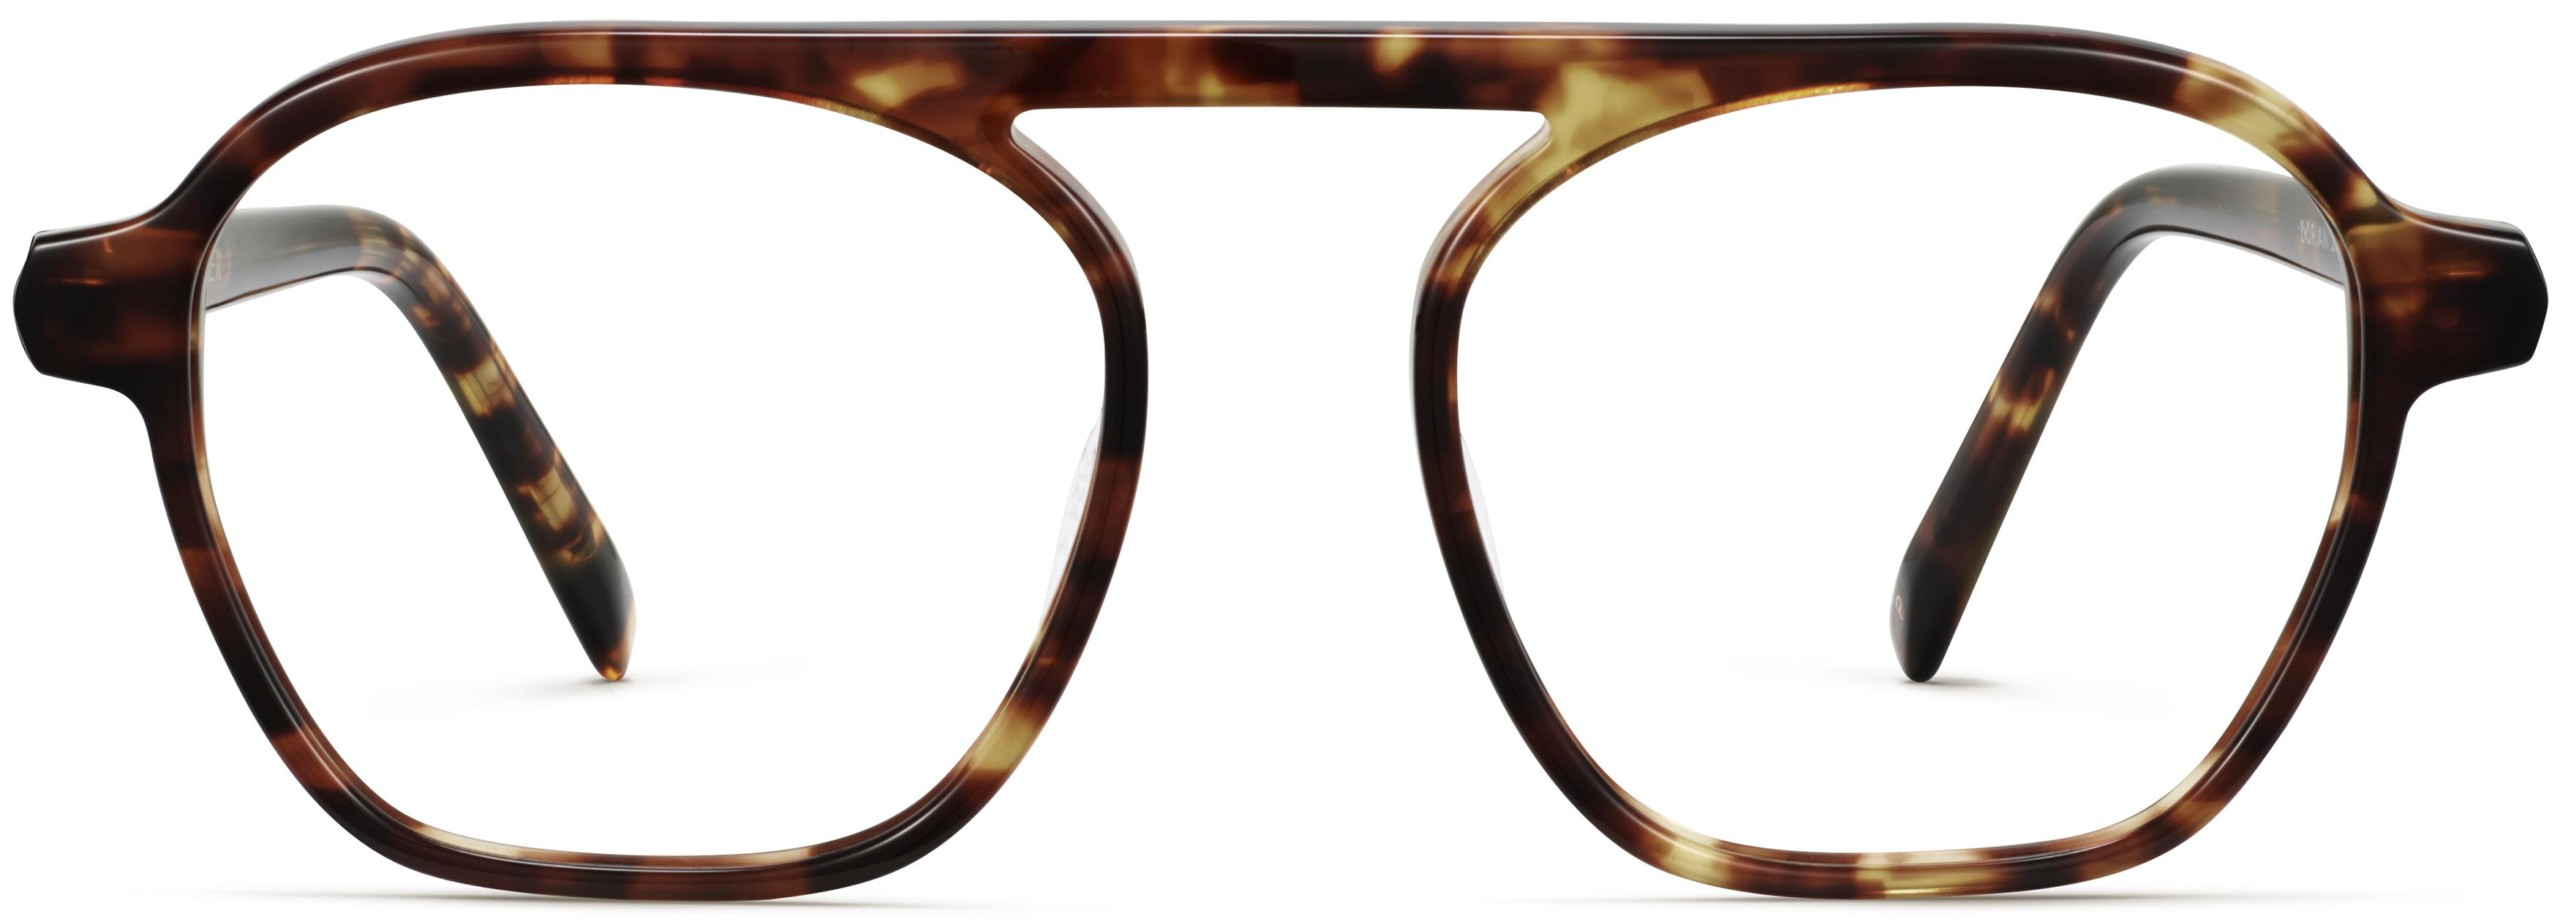 Front View Image of Dorian Eyeglasses Collection, by Warby Parker Brand, in Root Beer Color